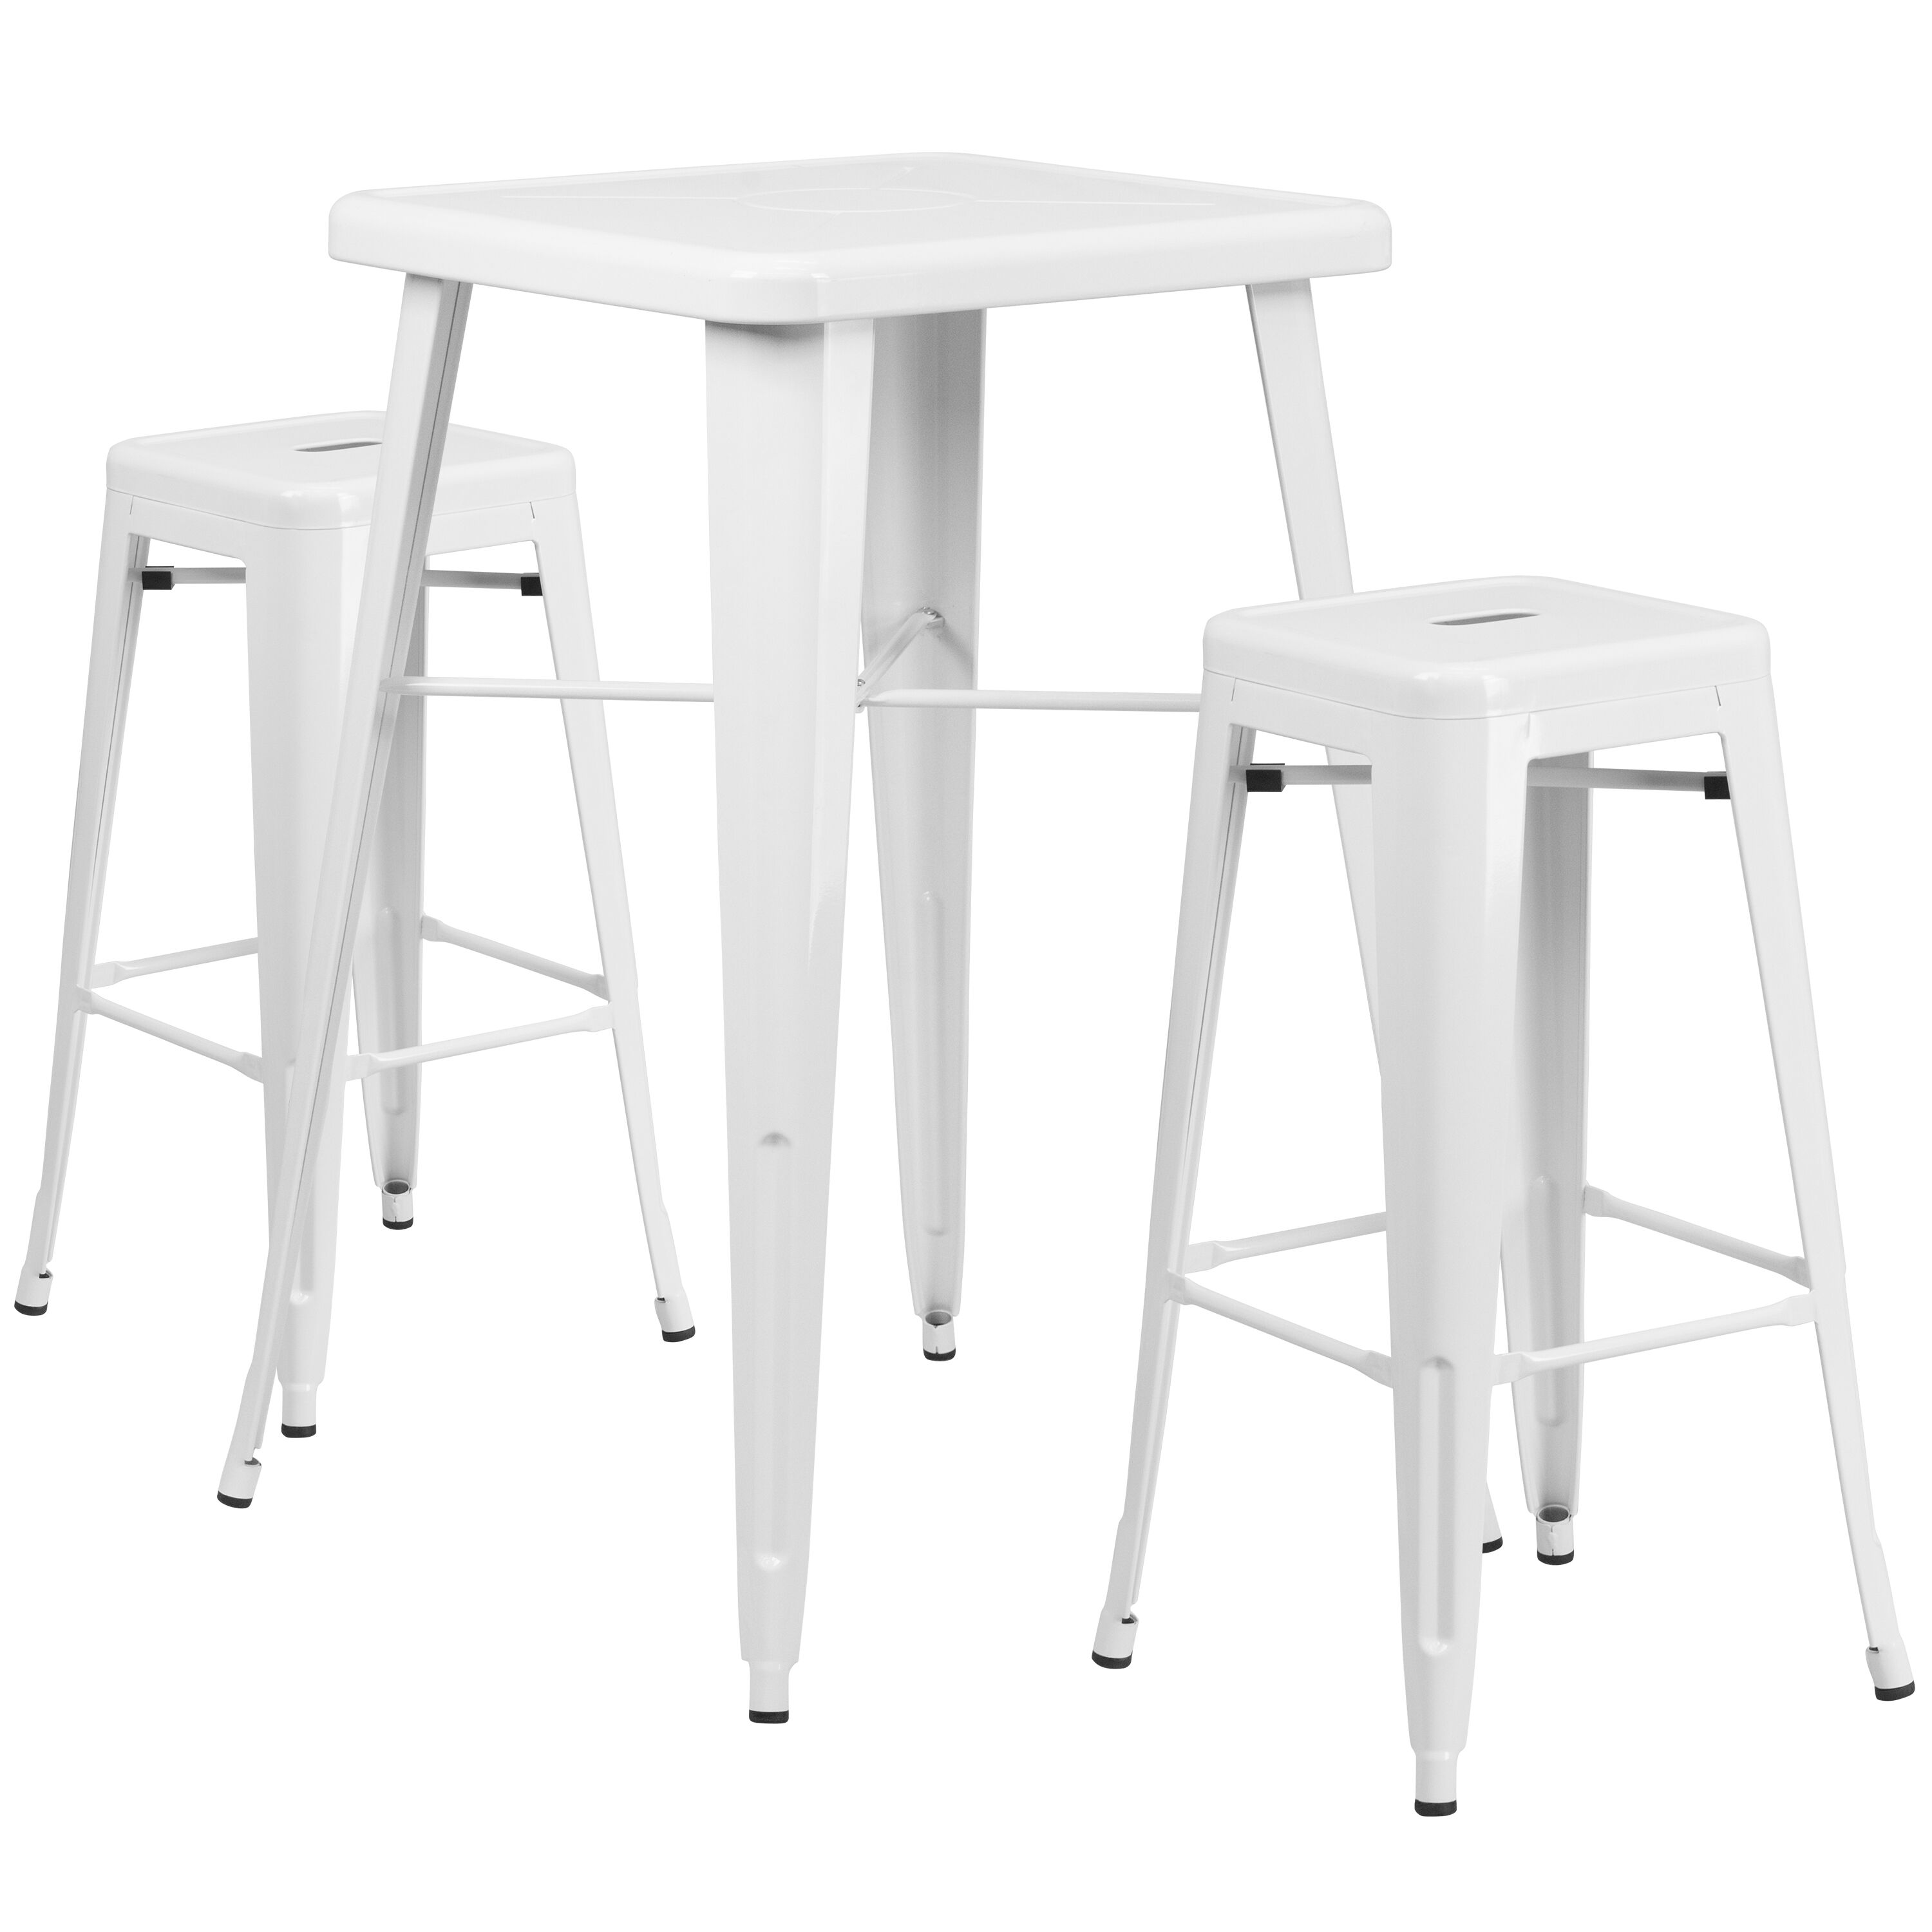 ... Our 23.75u0027u0027 Square White Metal Indoor Outdoor Bar Table Set With 2  Square